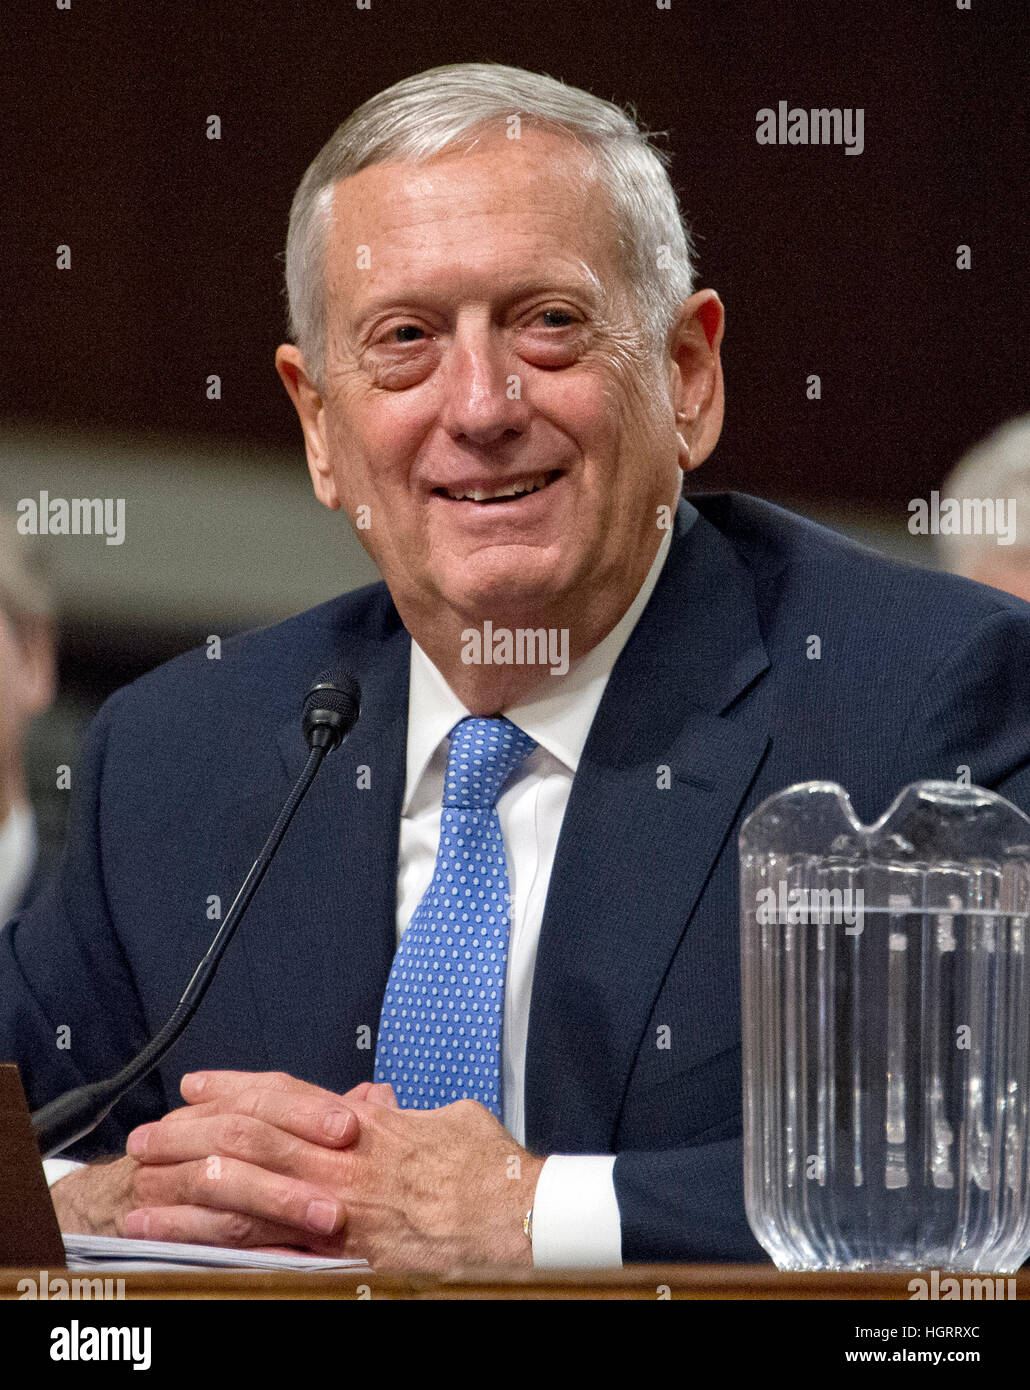 Washington DC, USA. 12th January 2017. United States Marine Corps General James N. Mattis (retired) testifies before Stock Photo